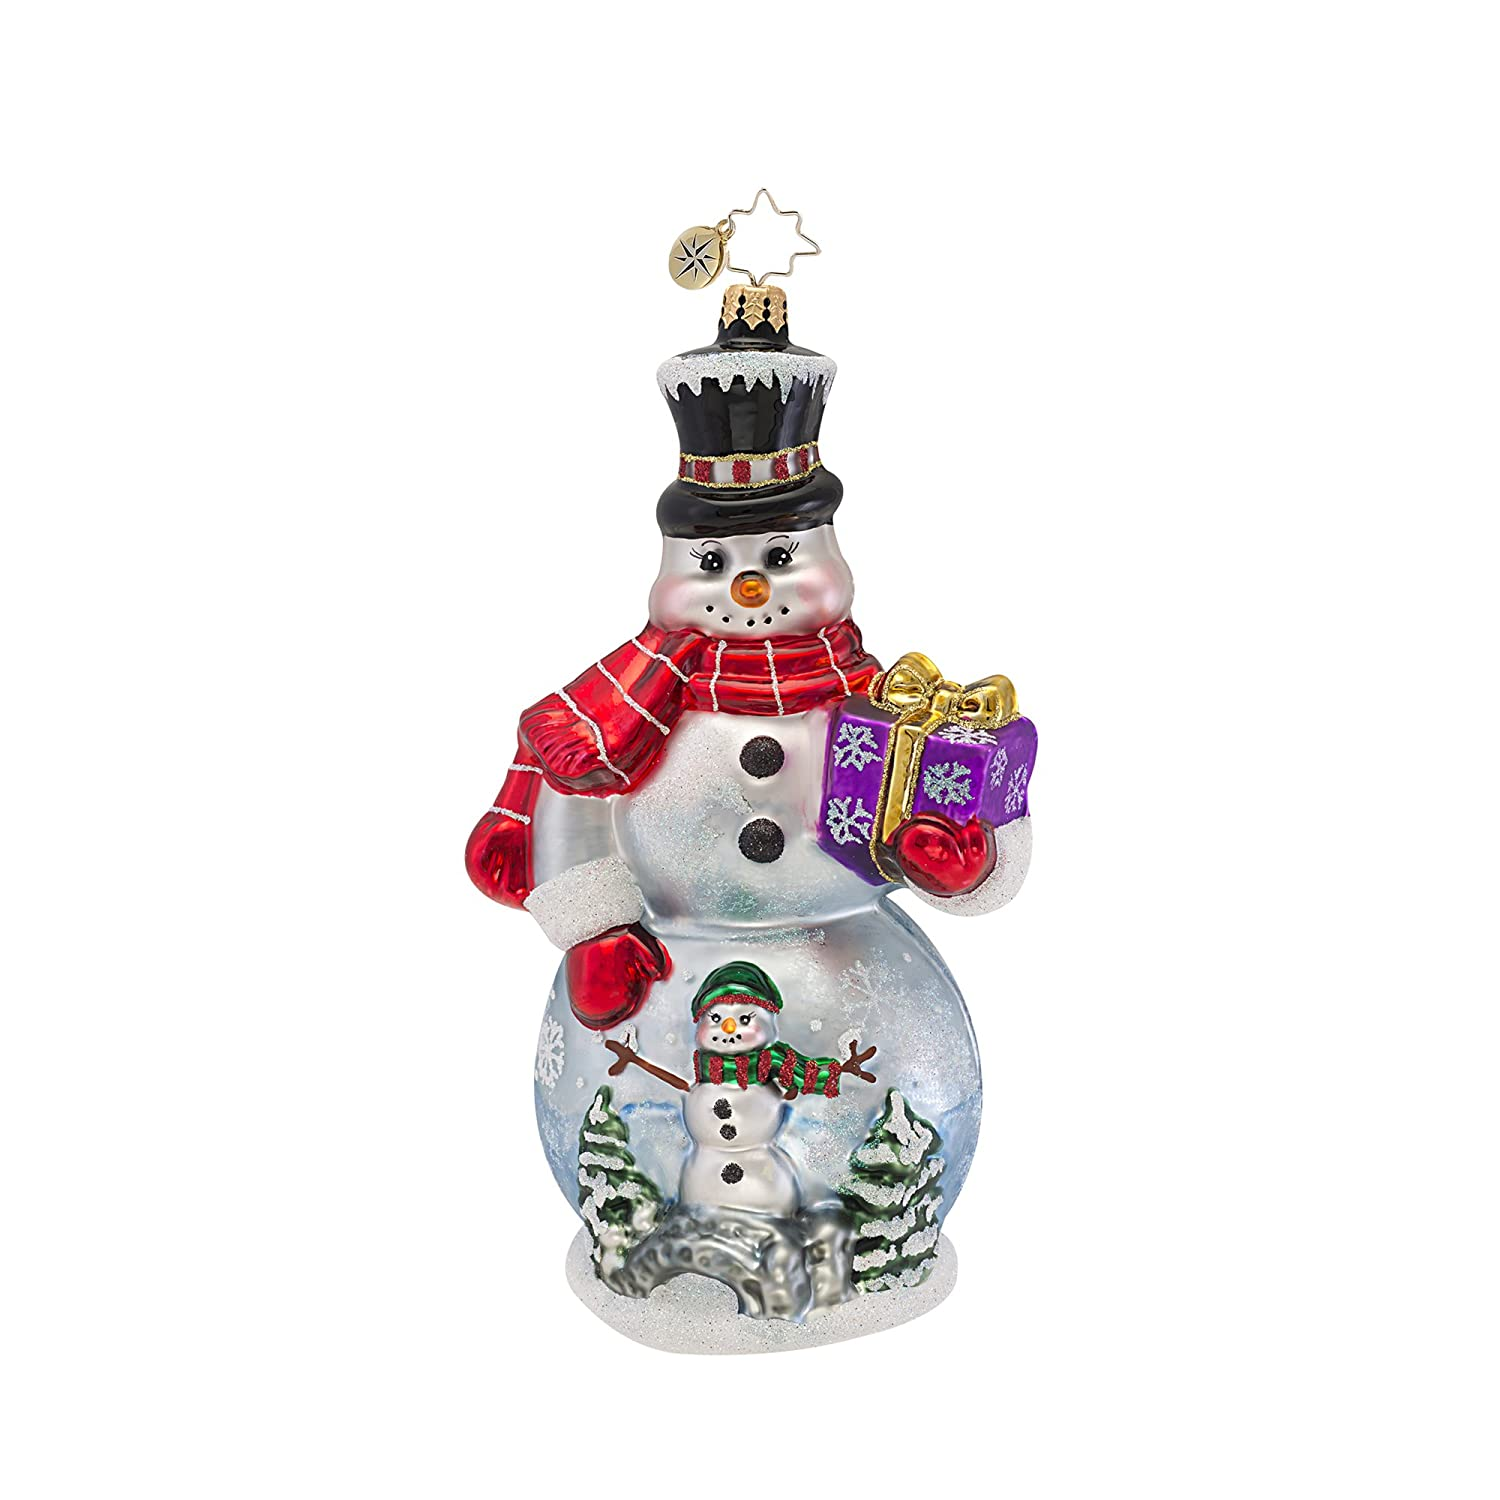 Christopher Radko Winter Wonderland Christmas Ornament